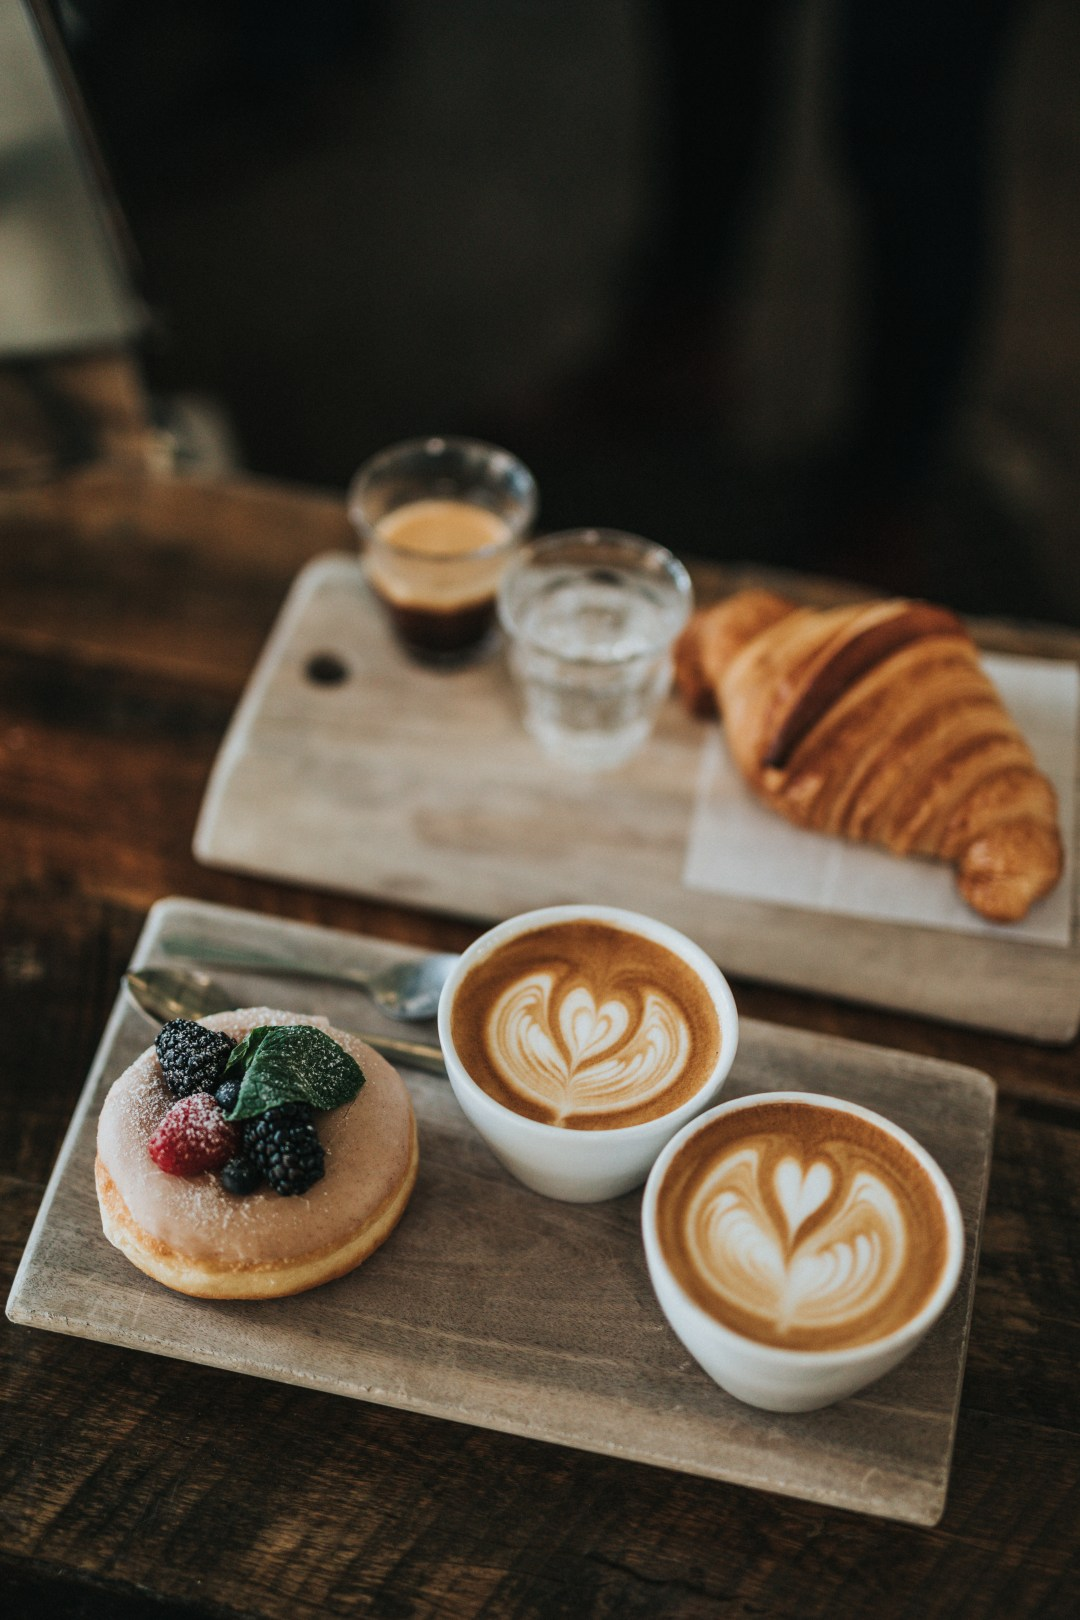 Cozy Fall Hd Wallpaper Cafe Pictures Download Free Images On Unsplash